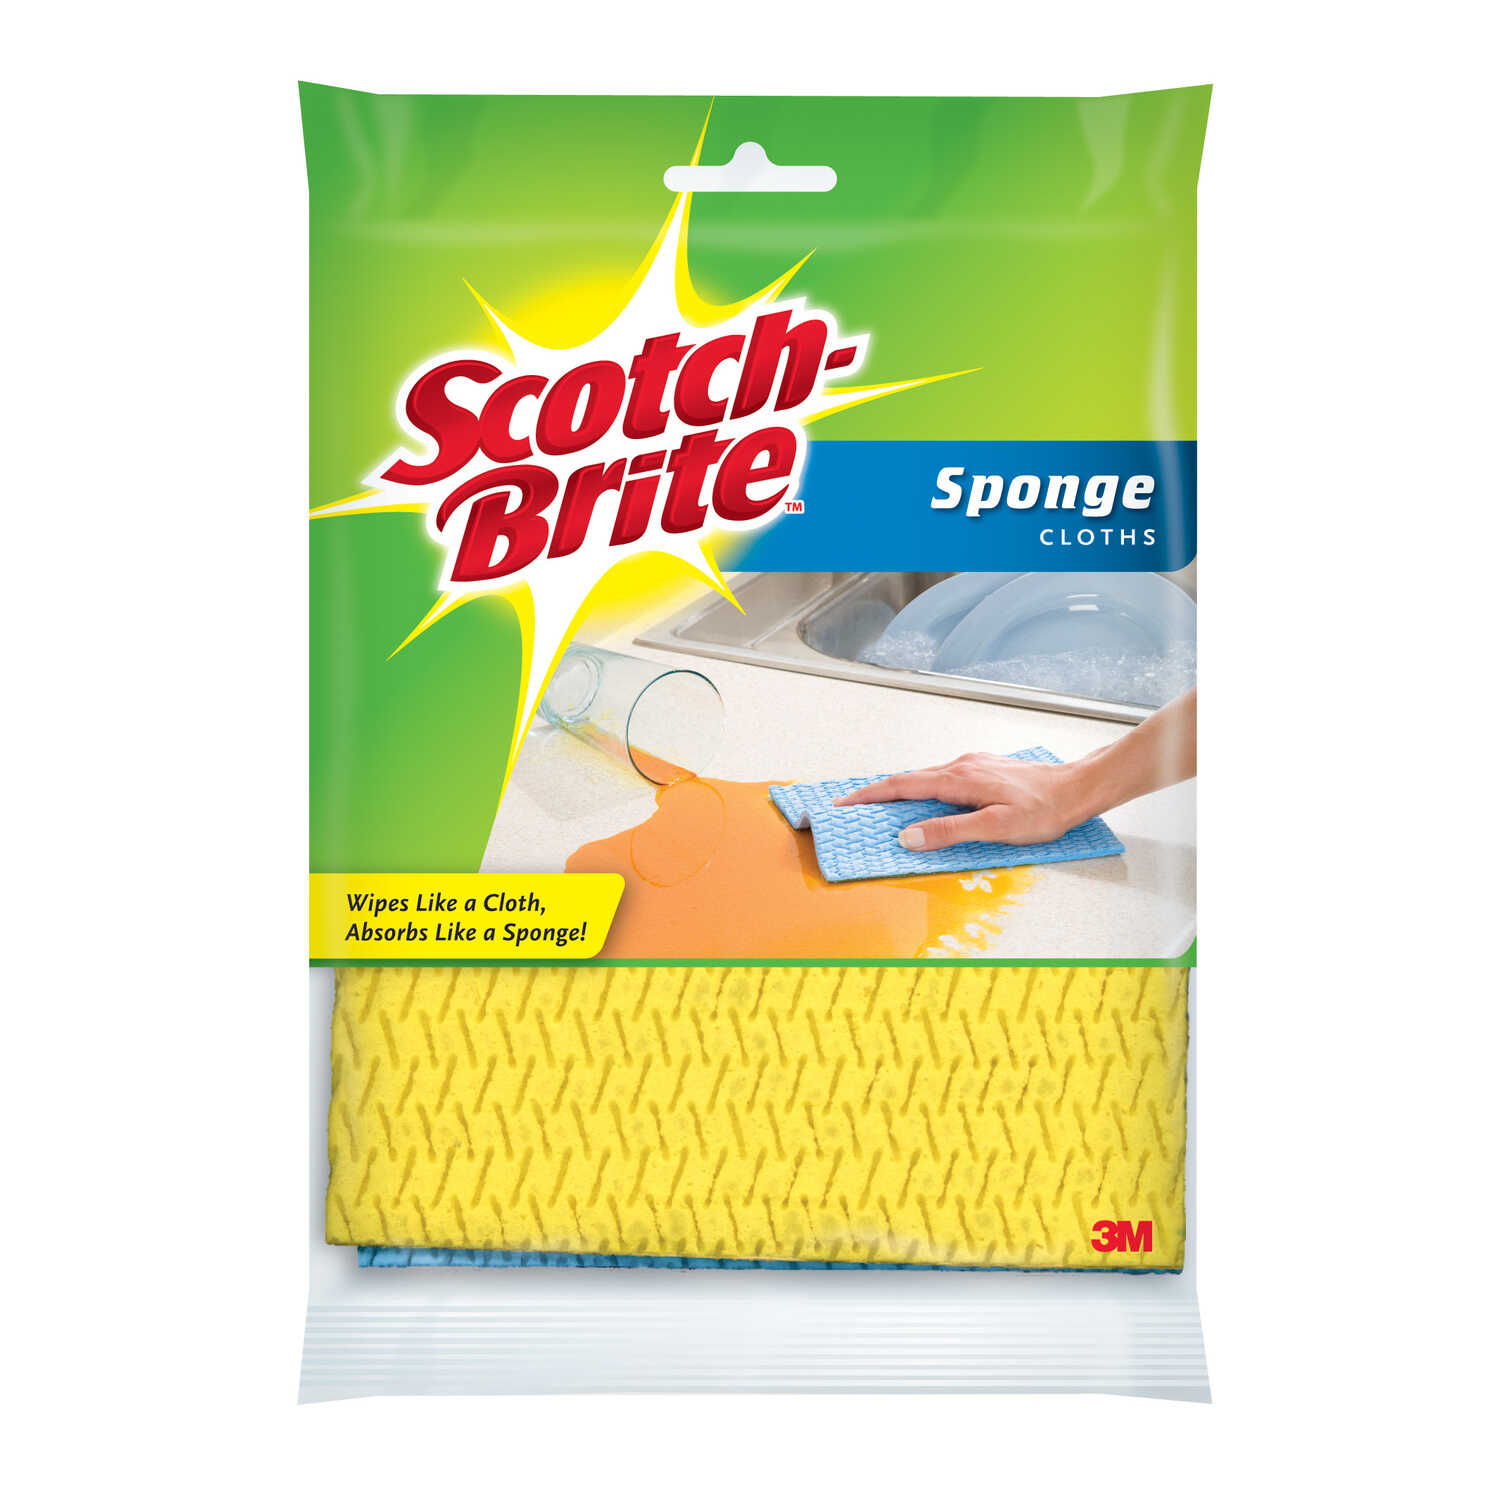 Scotch-Brite  Delicate, Light Duty  Scrubbing Cloths  6.8 in. L 2 pk